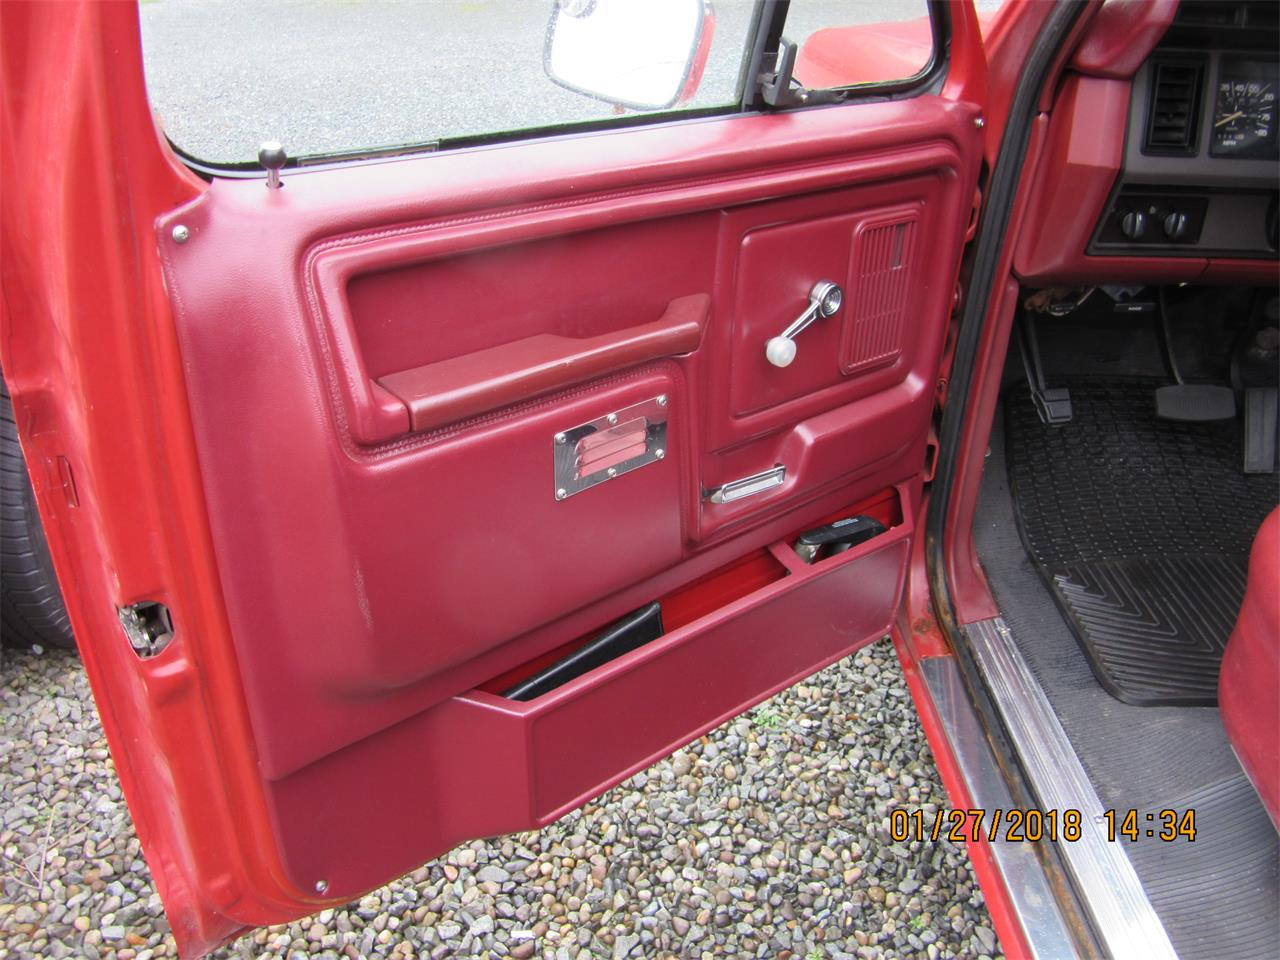 1985 Ford F150 for sale in PUYALLUP, WA – photo 20